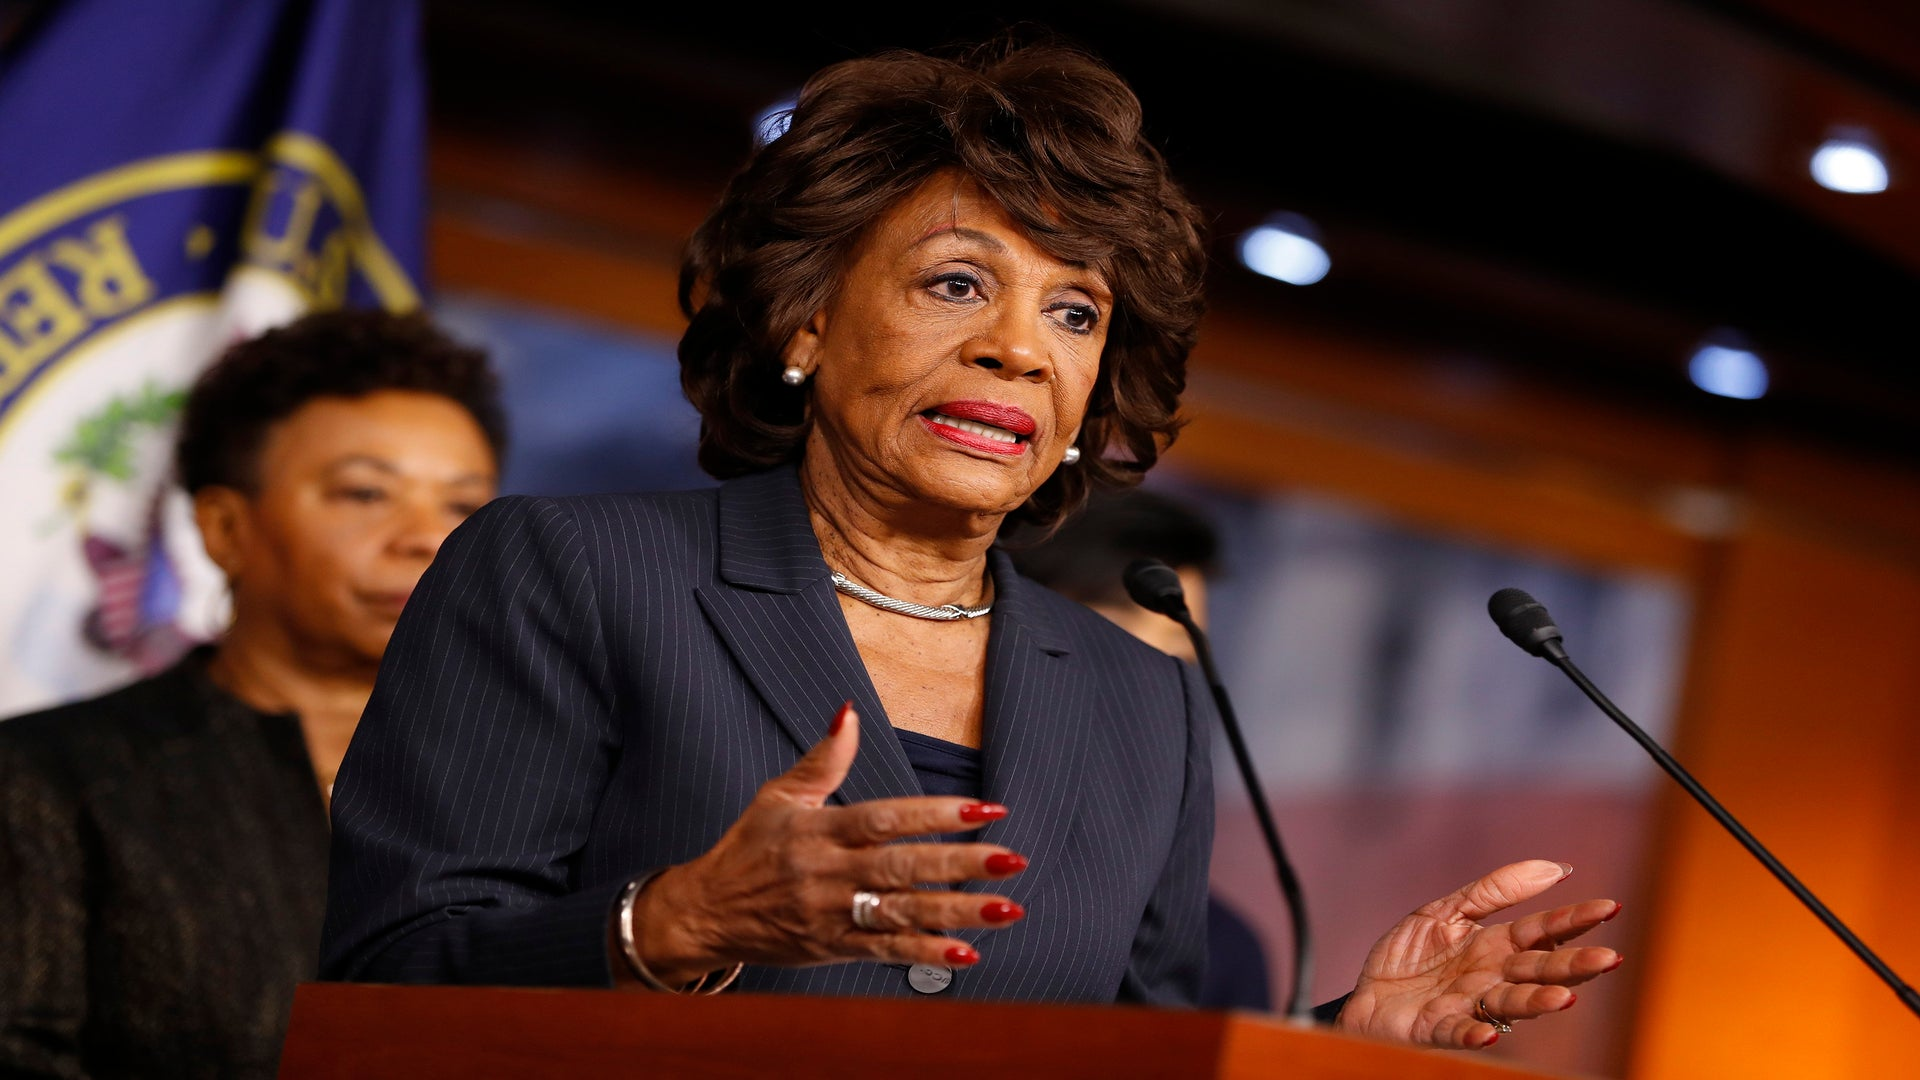 Maxine Waters On Trump: 'I will fight every day until he is impeached'